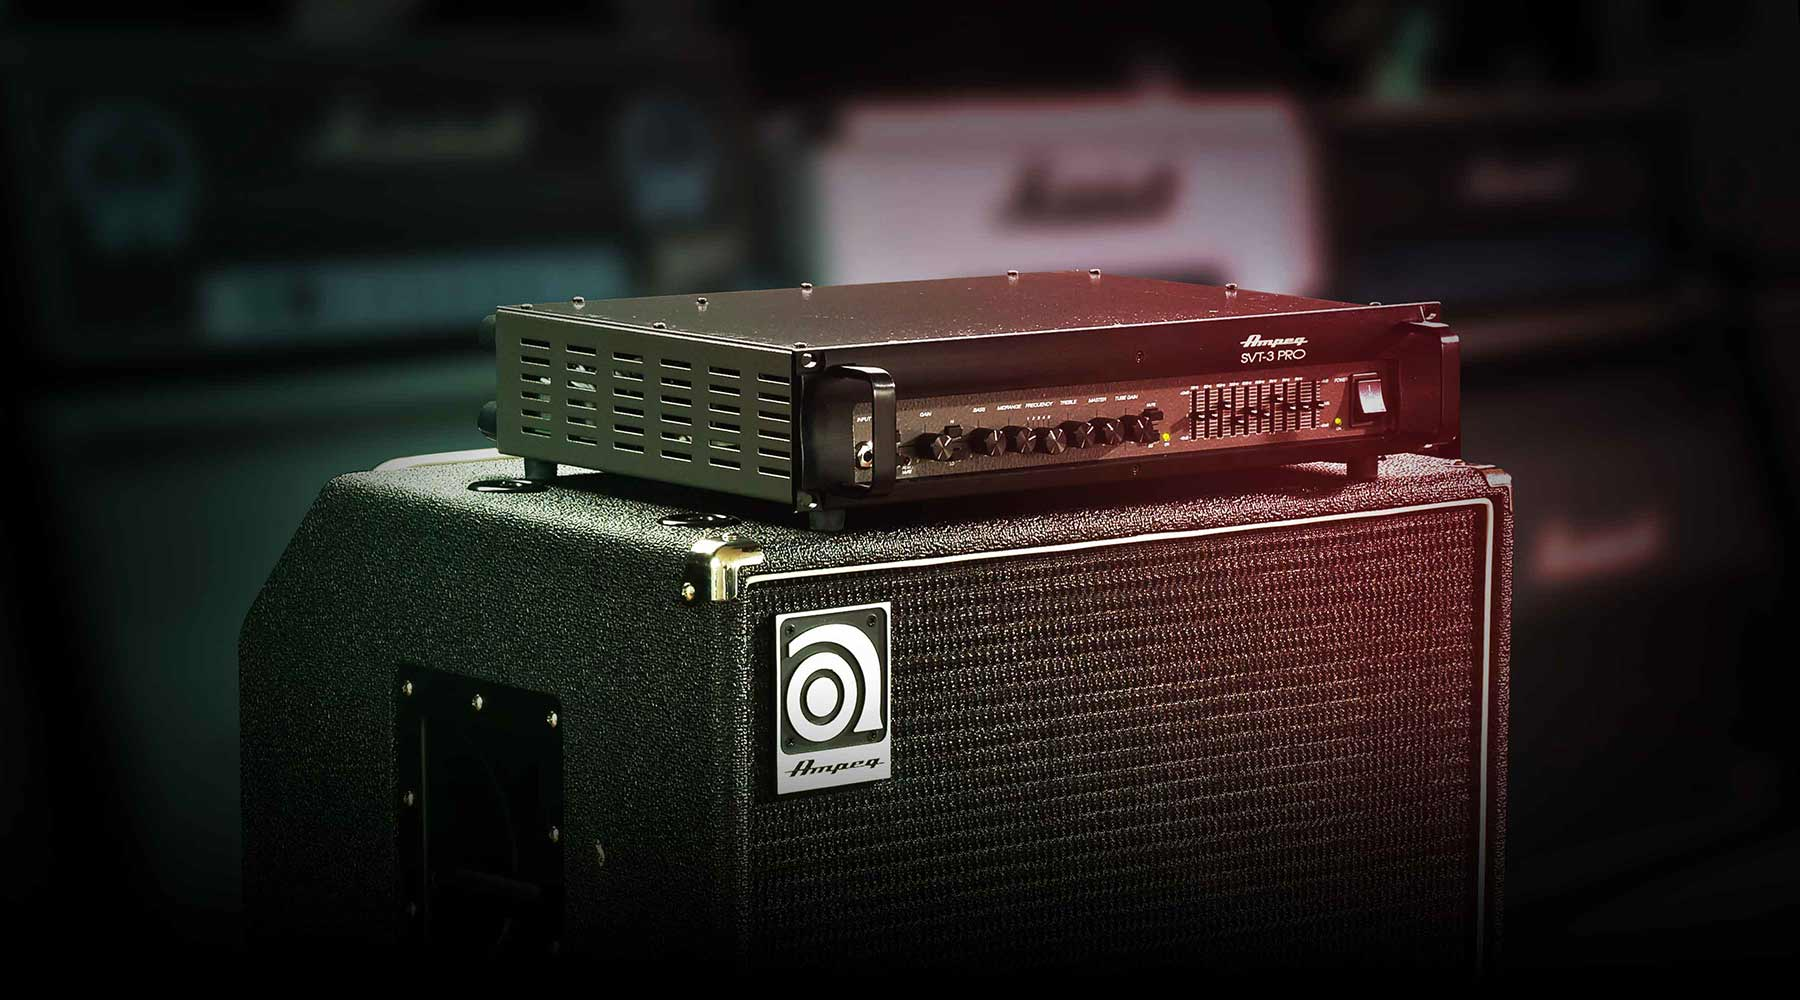 Plug-in Ampeg® SVT-3 PRO Bass Amplifier